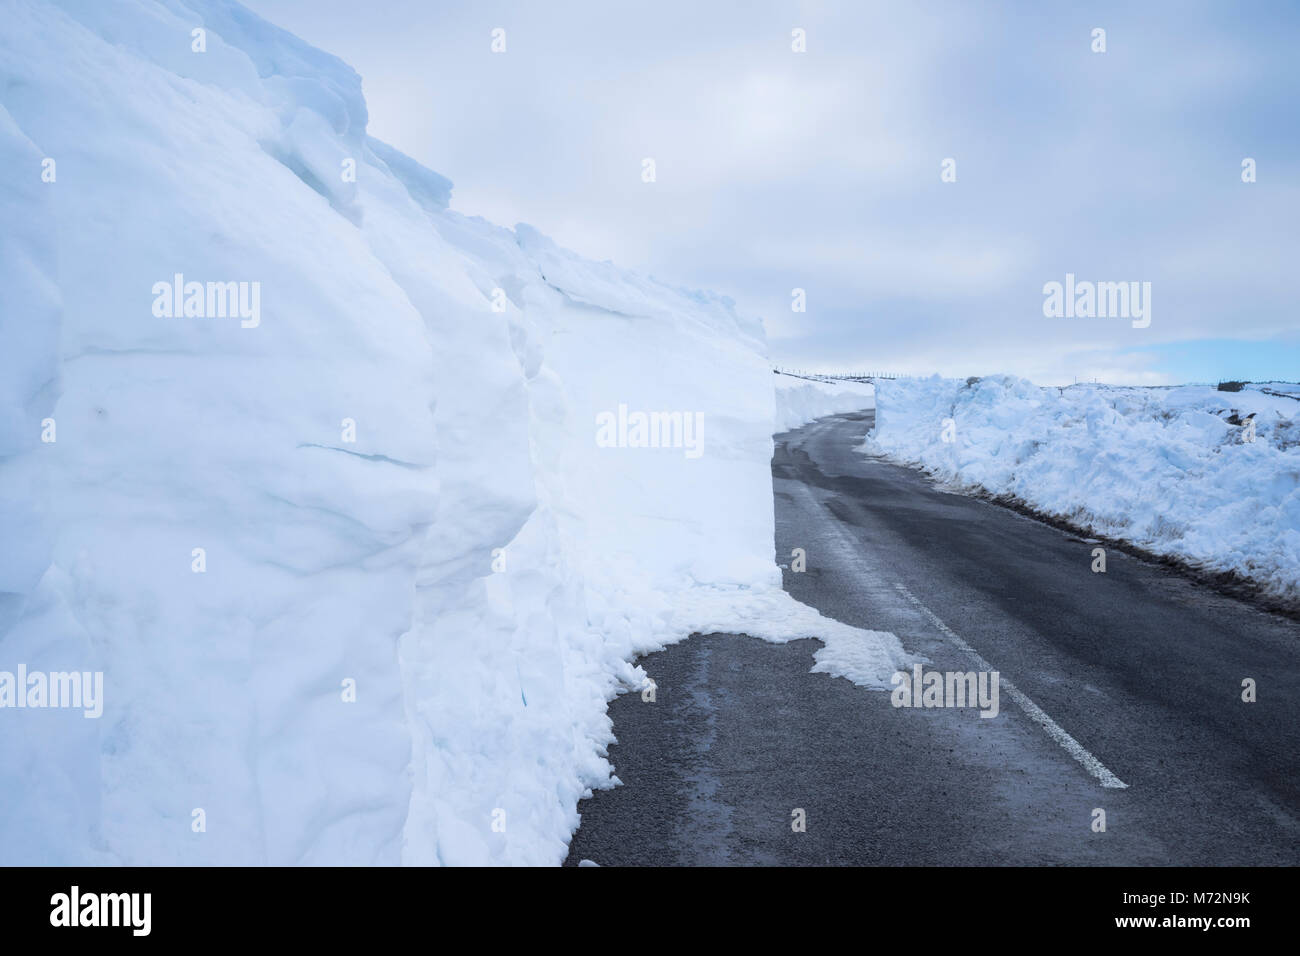 Country road near Allenheads in the North Pennines Area of Outstanding Natural Beauty, partially blocked by snow - Stock Image